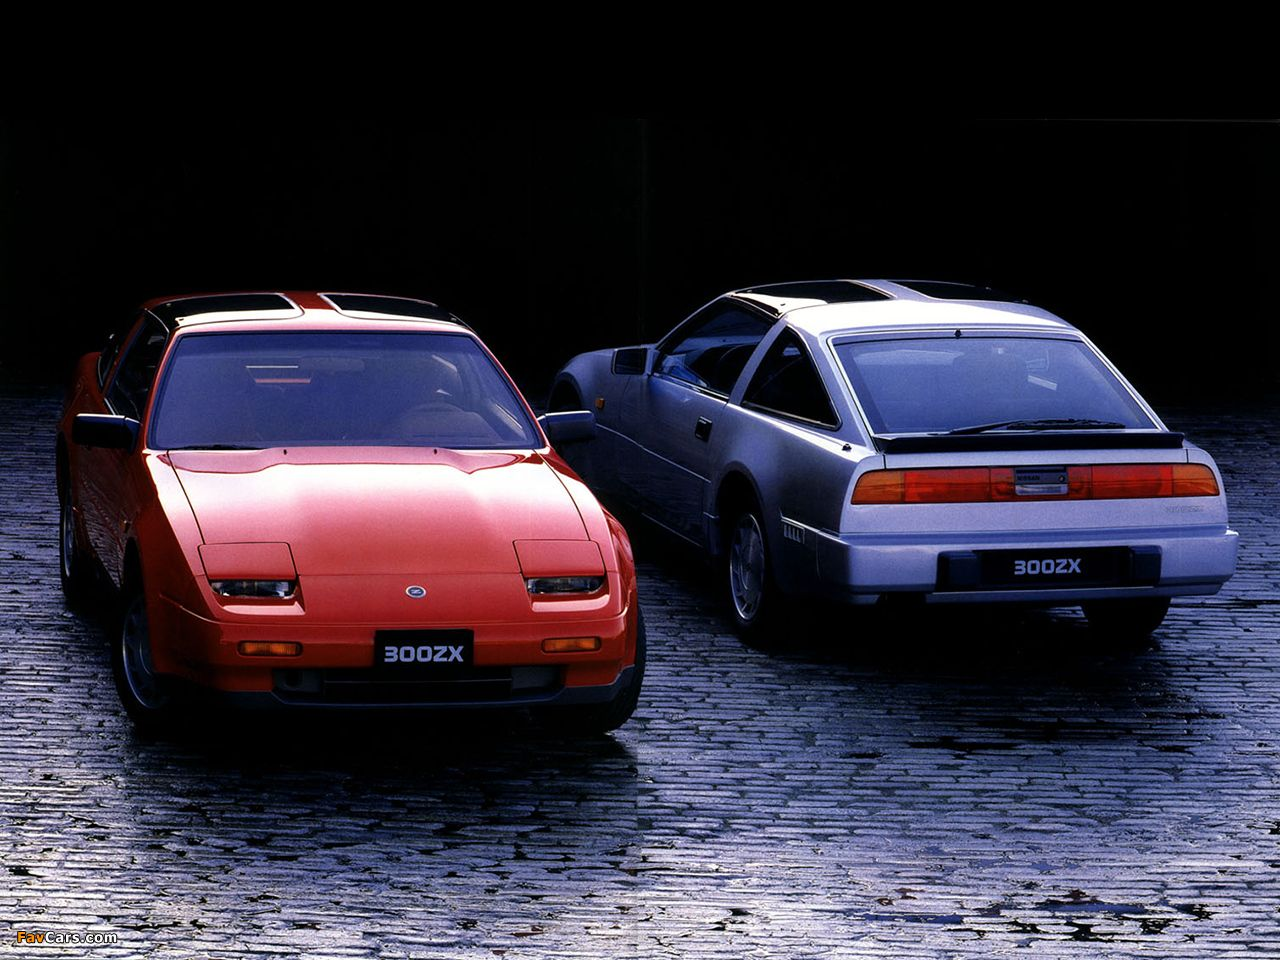 Visit our website to enjoy the pictures and sounds of the 1987 nissan nissan fairlady z sports cars